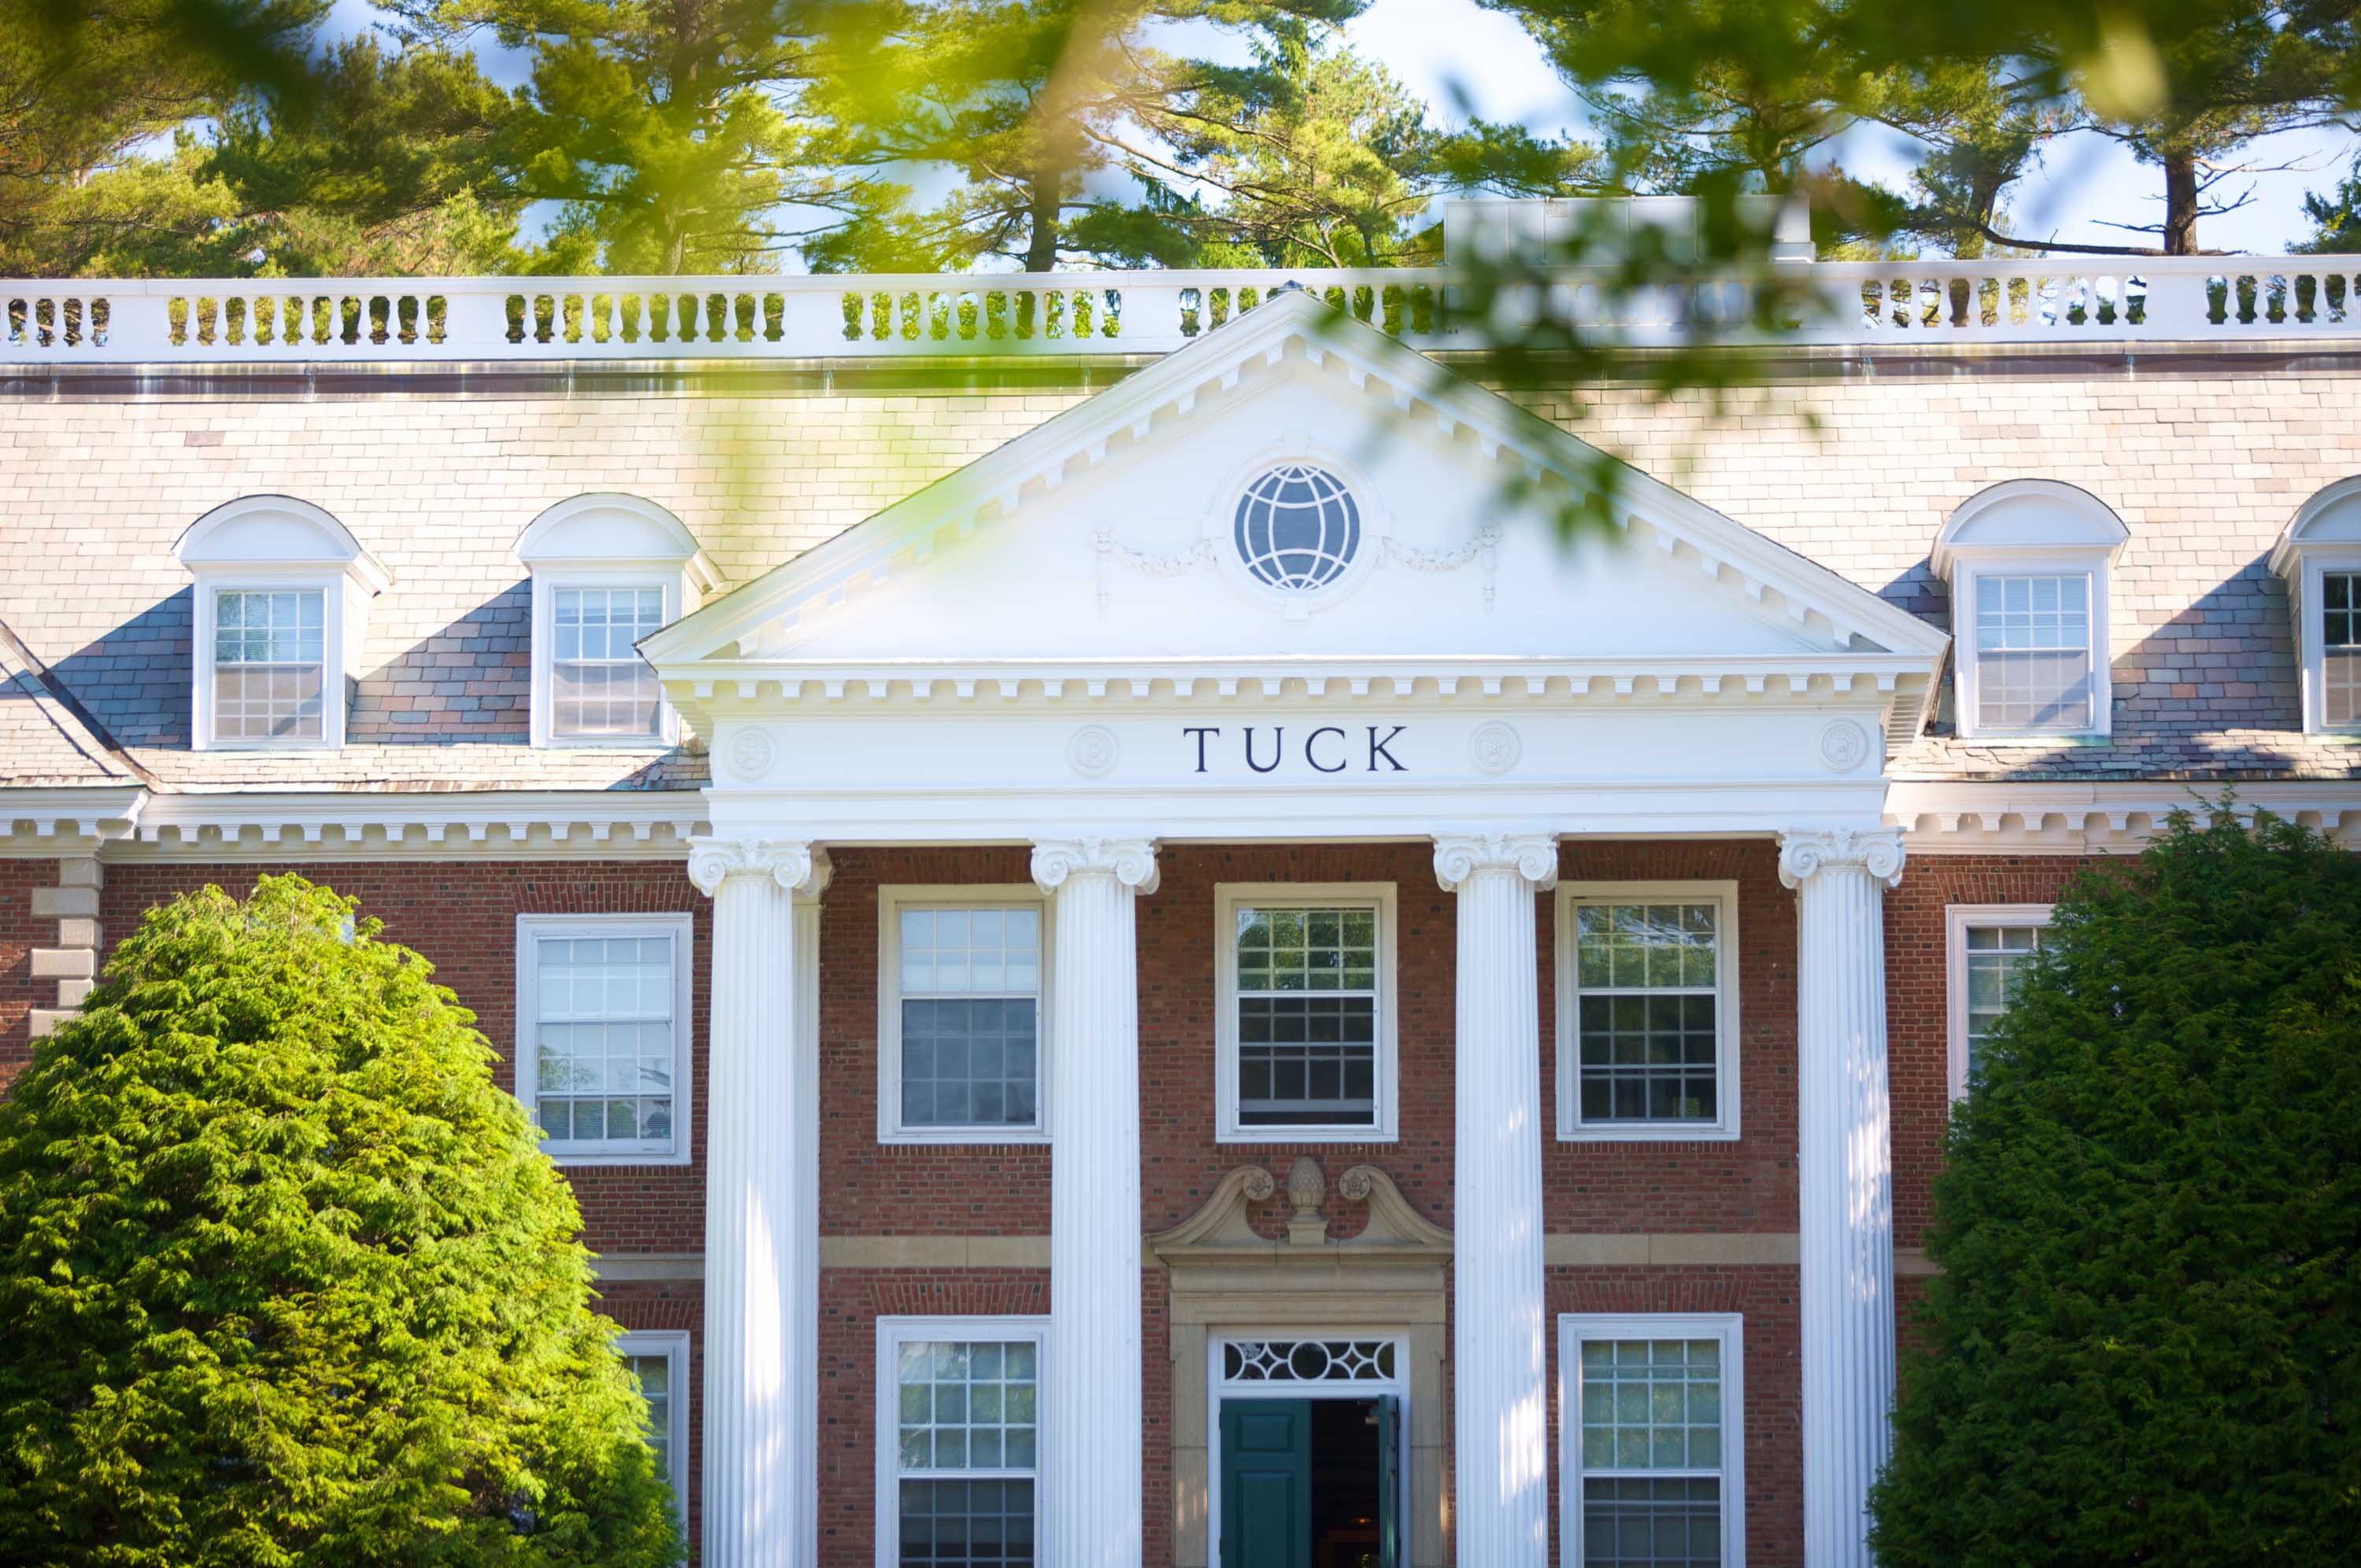 dartmouth tuck essays 2013 The tuck school of business at dartmouth  tuck's 2016-2017 essay questions  (revised)  below is our original post on our essays, with the revised wording for  the first essay good luck  2014 » january (8) » february (10) » march (10)  » april (7) » may (5) » june (8) » july (18) » august (11).